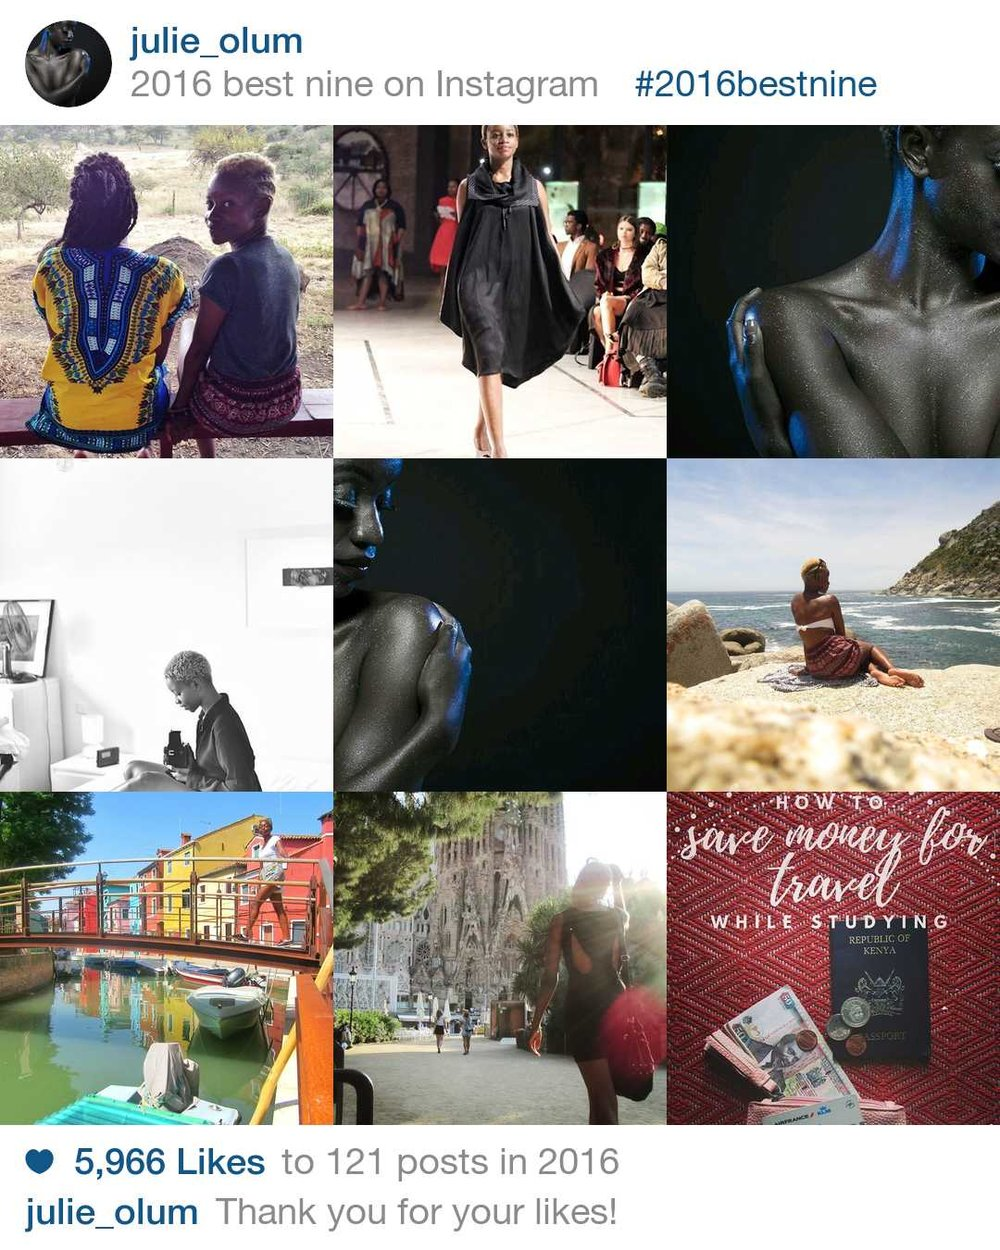 frame ambition best nine 2016 instagram